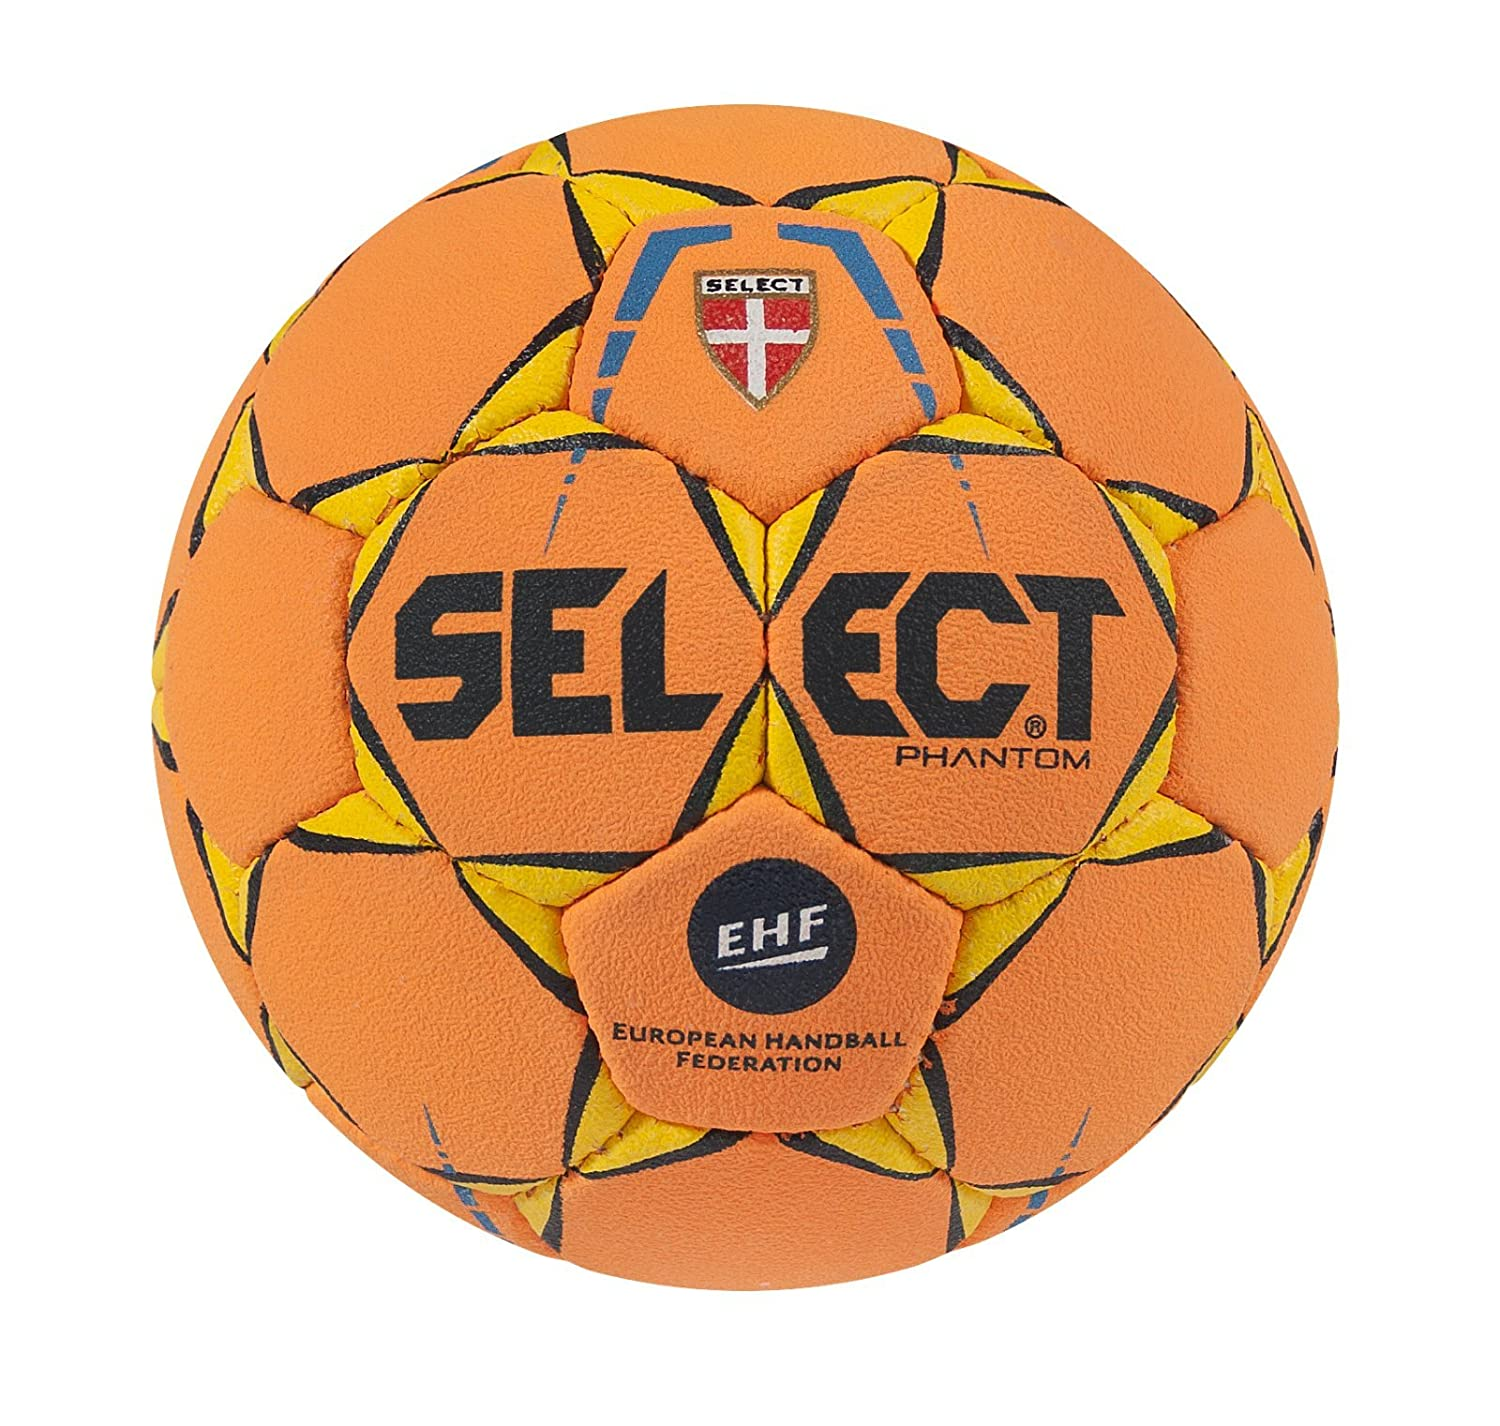 SELECT Phantom – Balón de Balonmano, Color Naranja, tamaño 1 ...